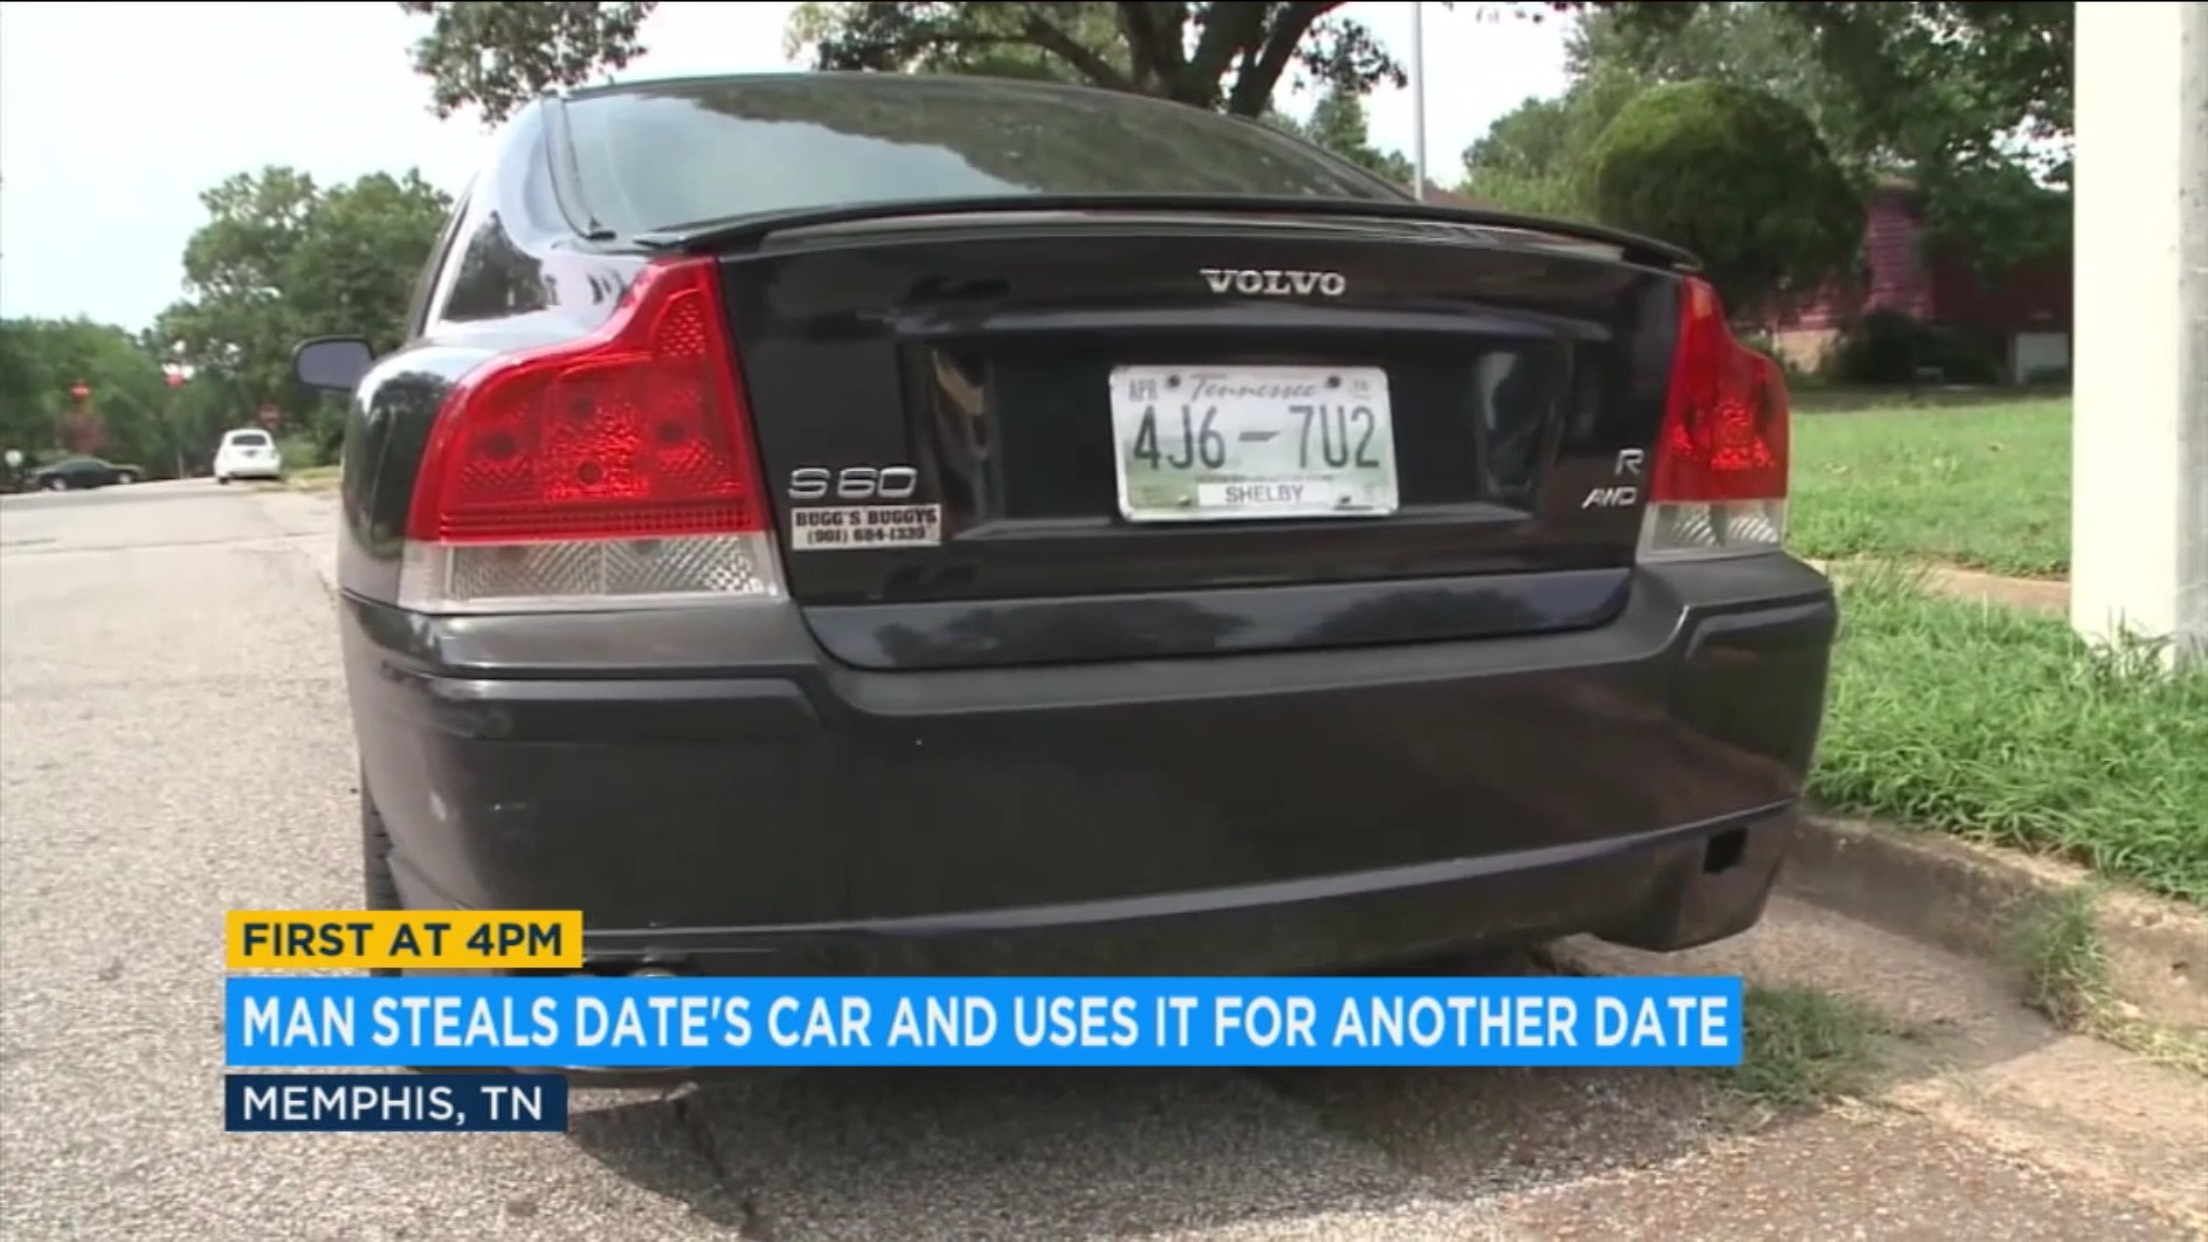 Man Steals Date's Car And Uses It For Another Date